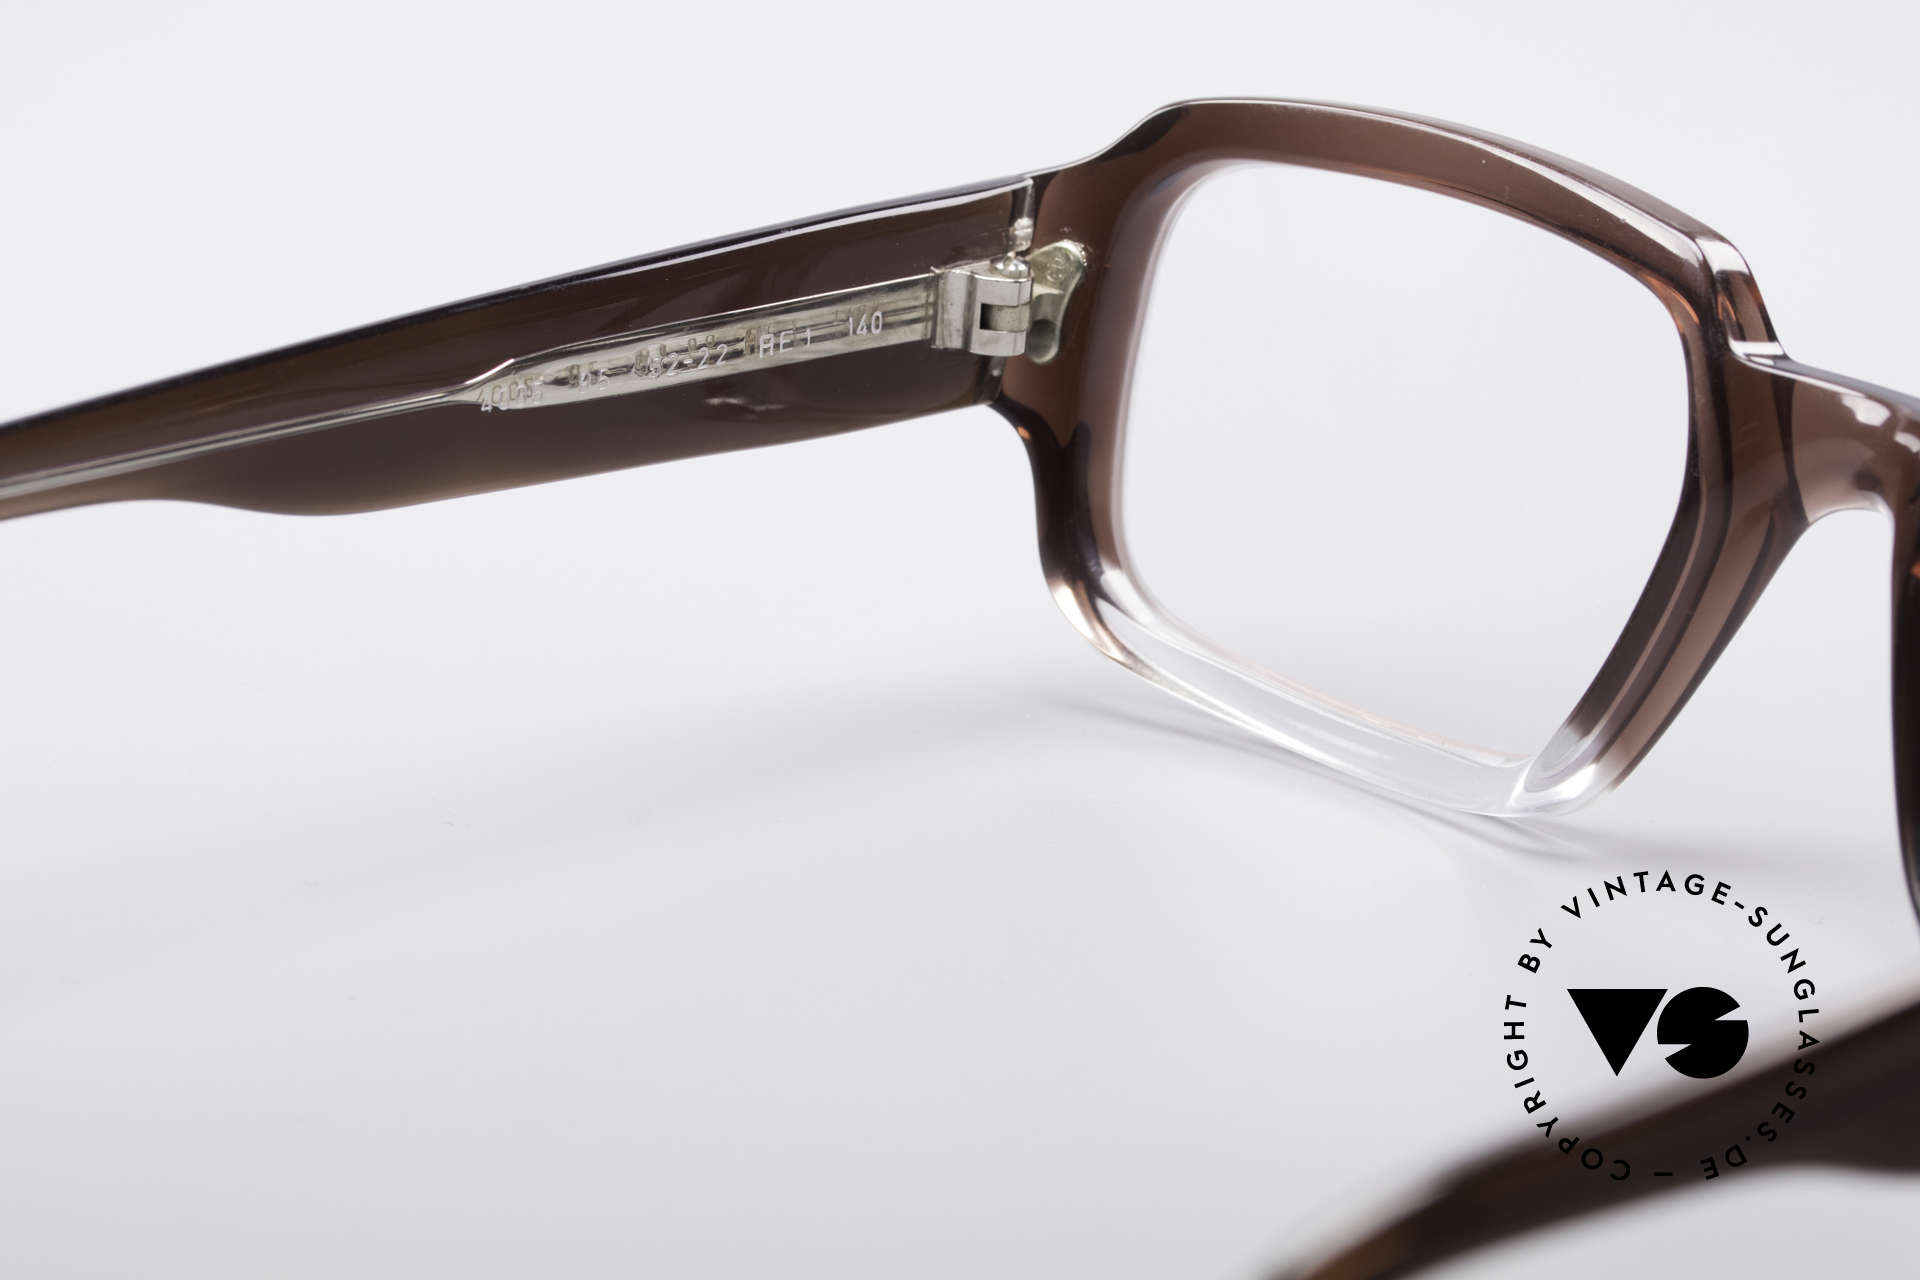 Metzler 4005 Old Original Marwitz Glasses, thus, listed in our Metzler category, although Marwitz, Made for Men